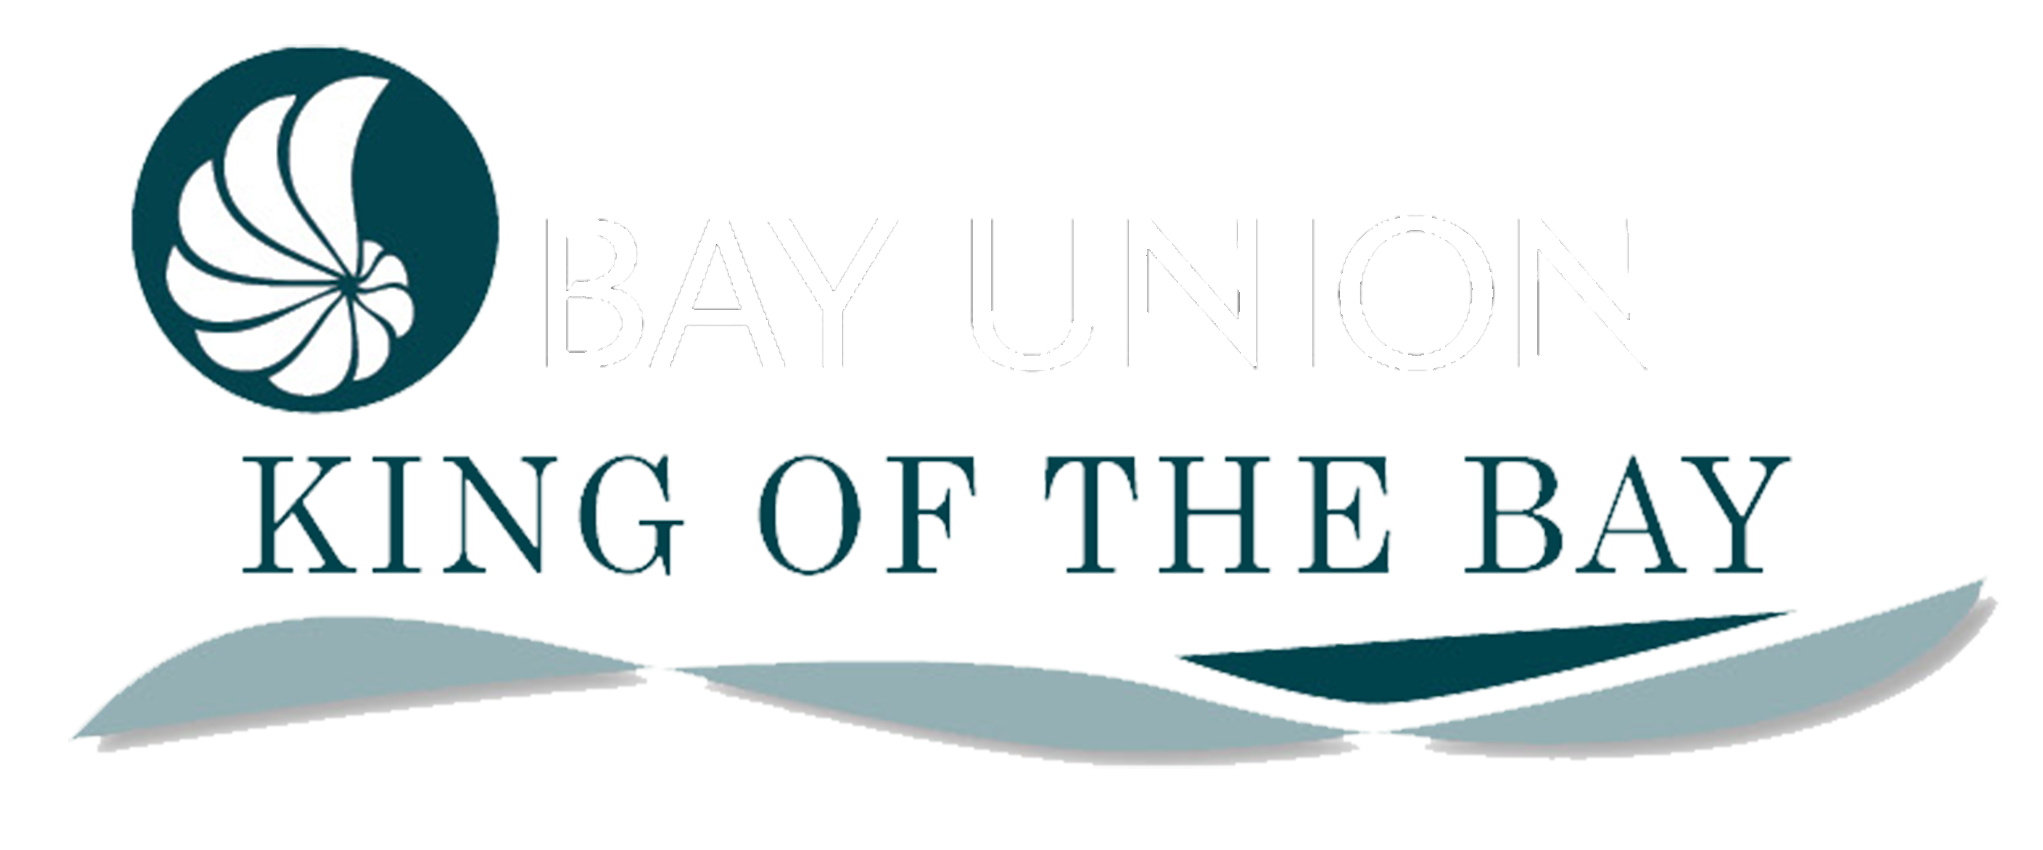 Bay Union King of the Bay